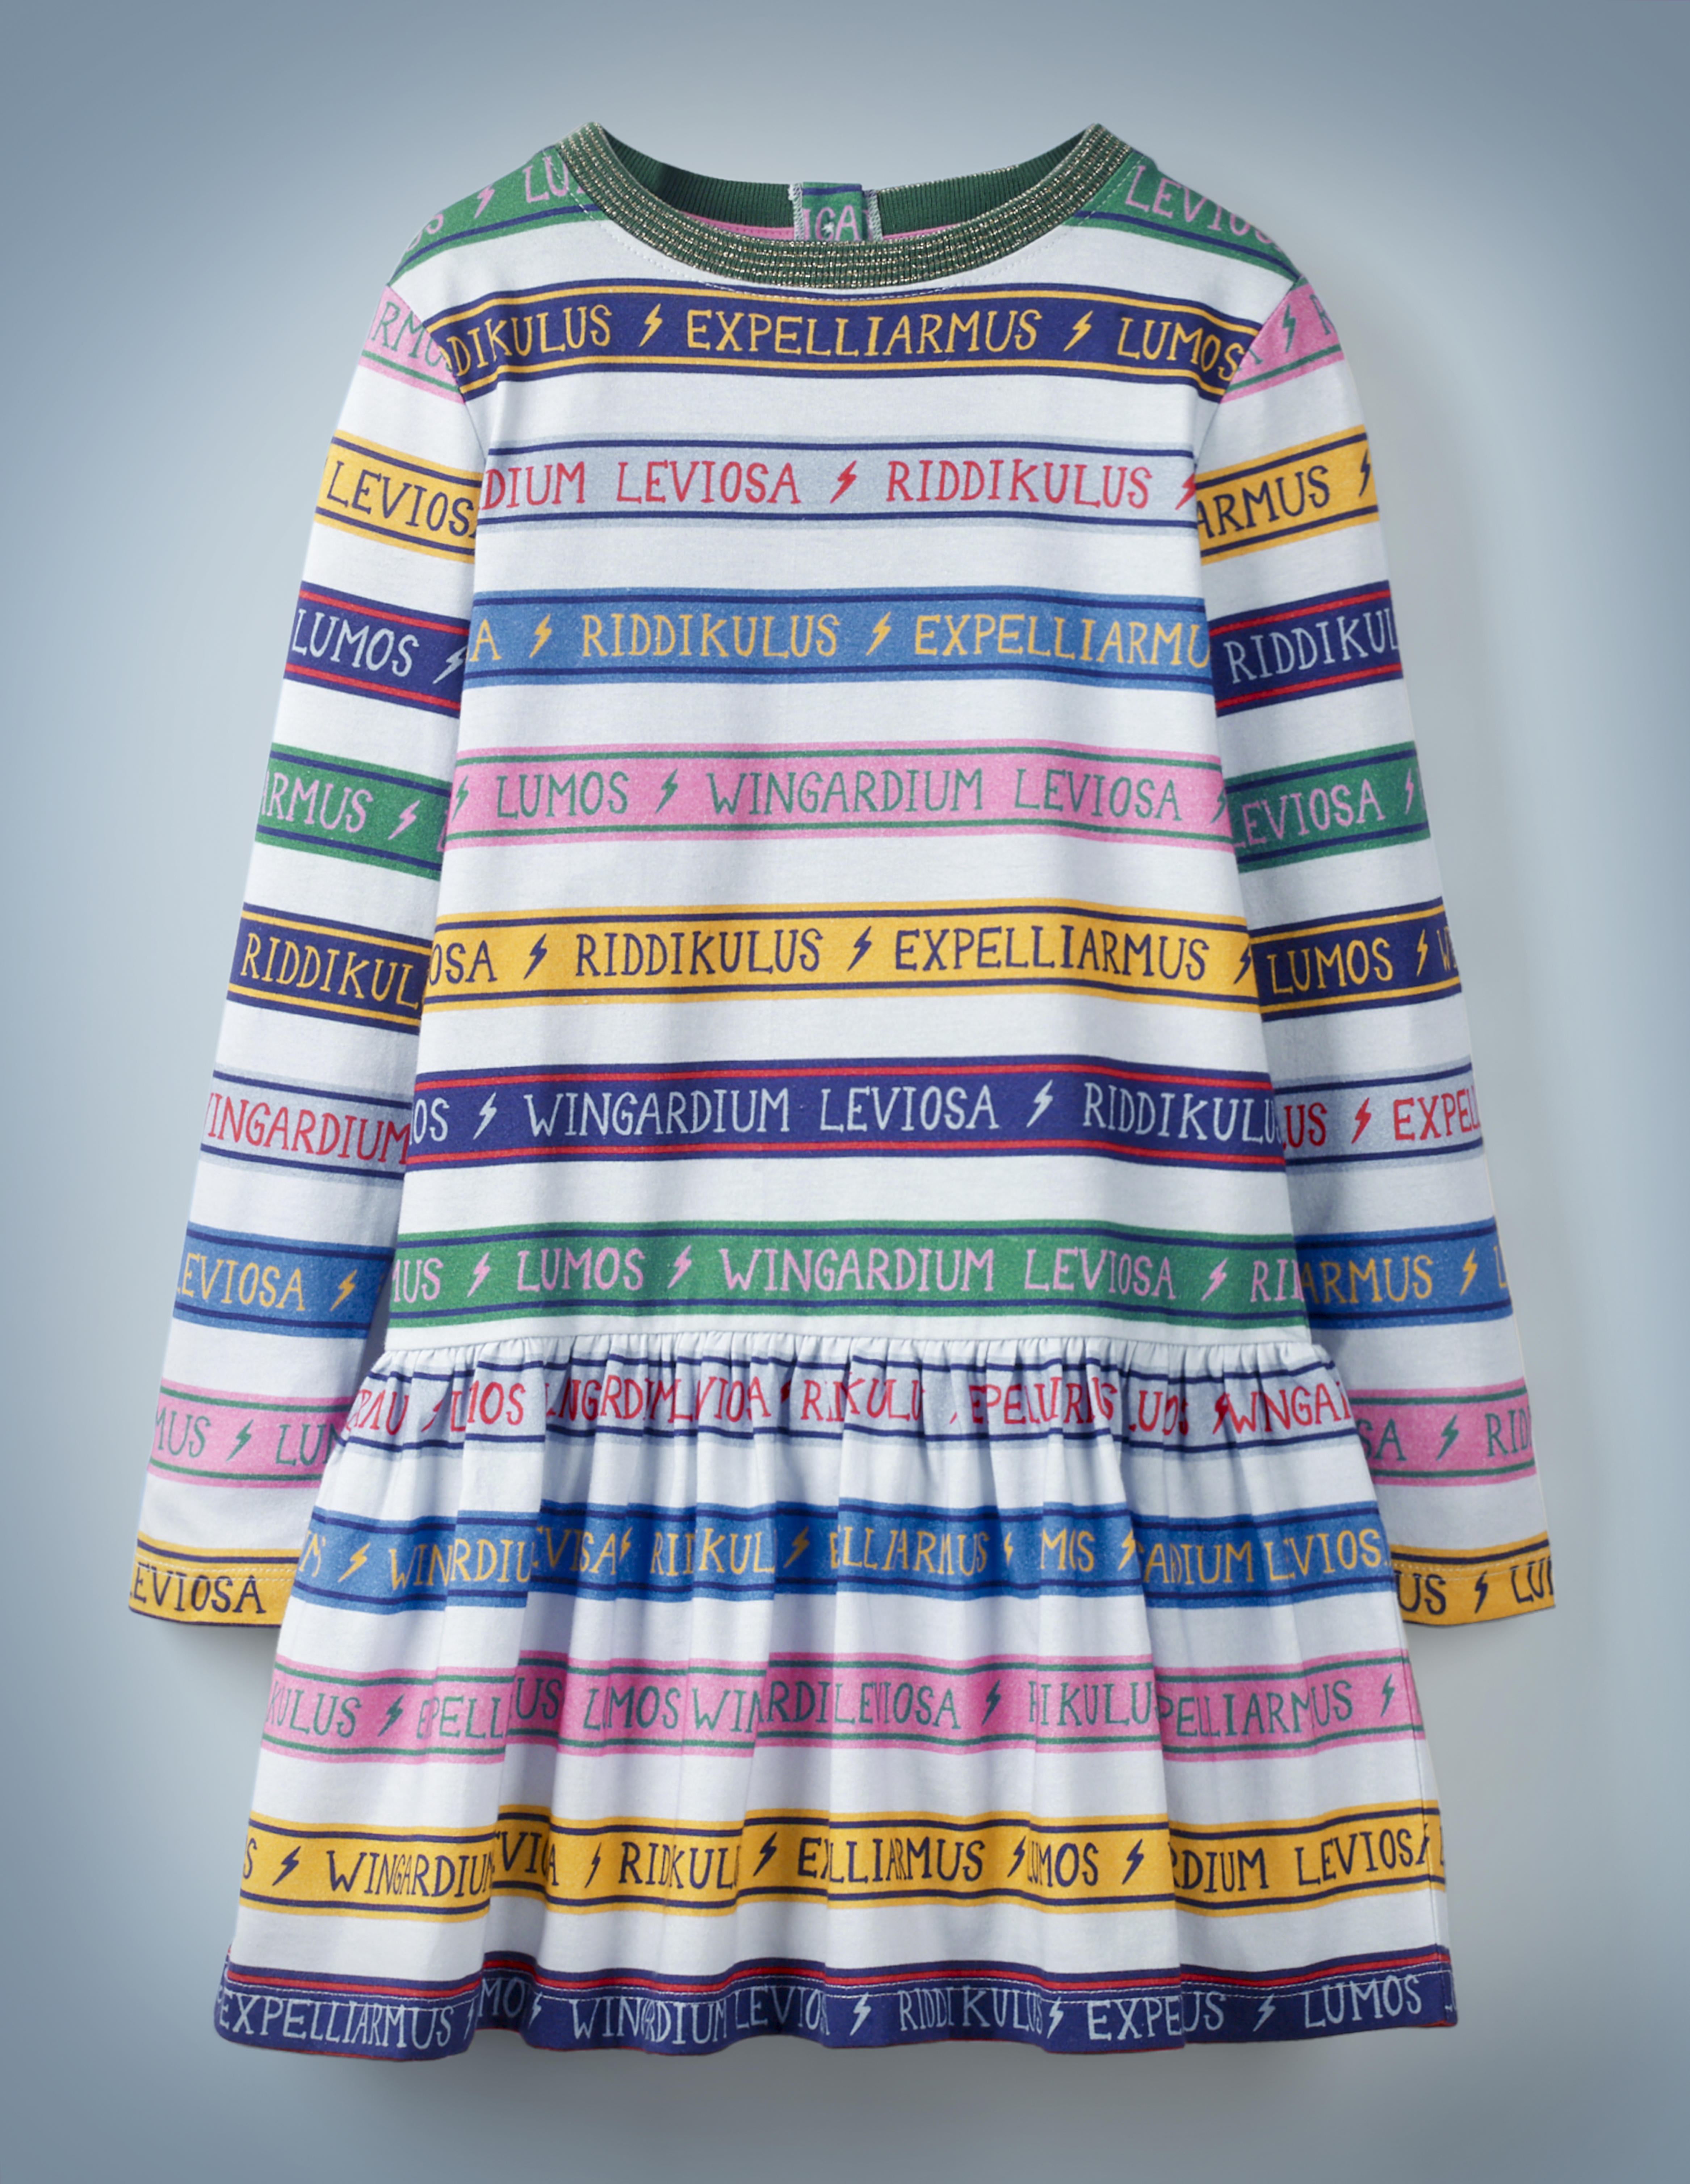 """The Mini Boden Charms Class Stripe Dress, multi-color, features alternating white and colored stripes. The colored stripes include spell incantations separated by lightning bolts, including """"Wingardium Leviosa,"""" """"Riddikulus,"""" """"Expelliarmus,"""" and """"Lumos."""" It retails at £28."""